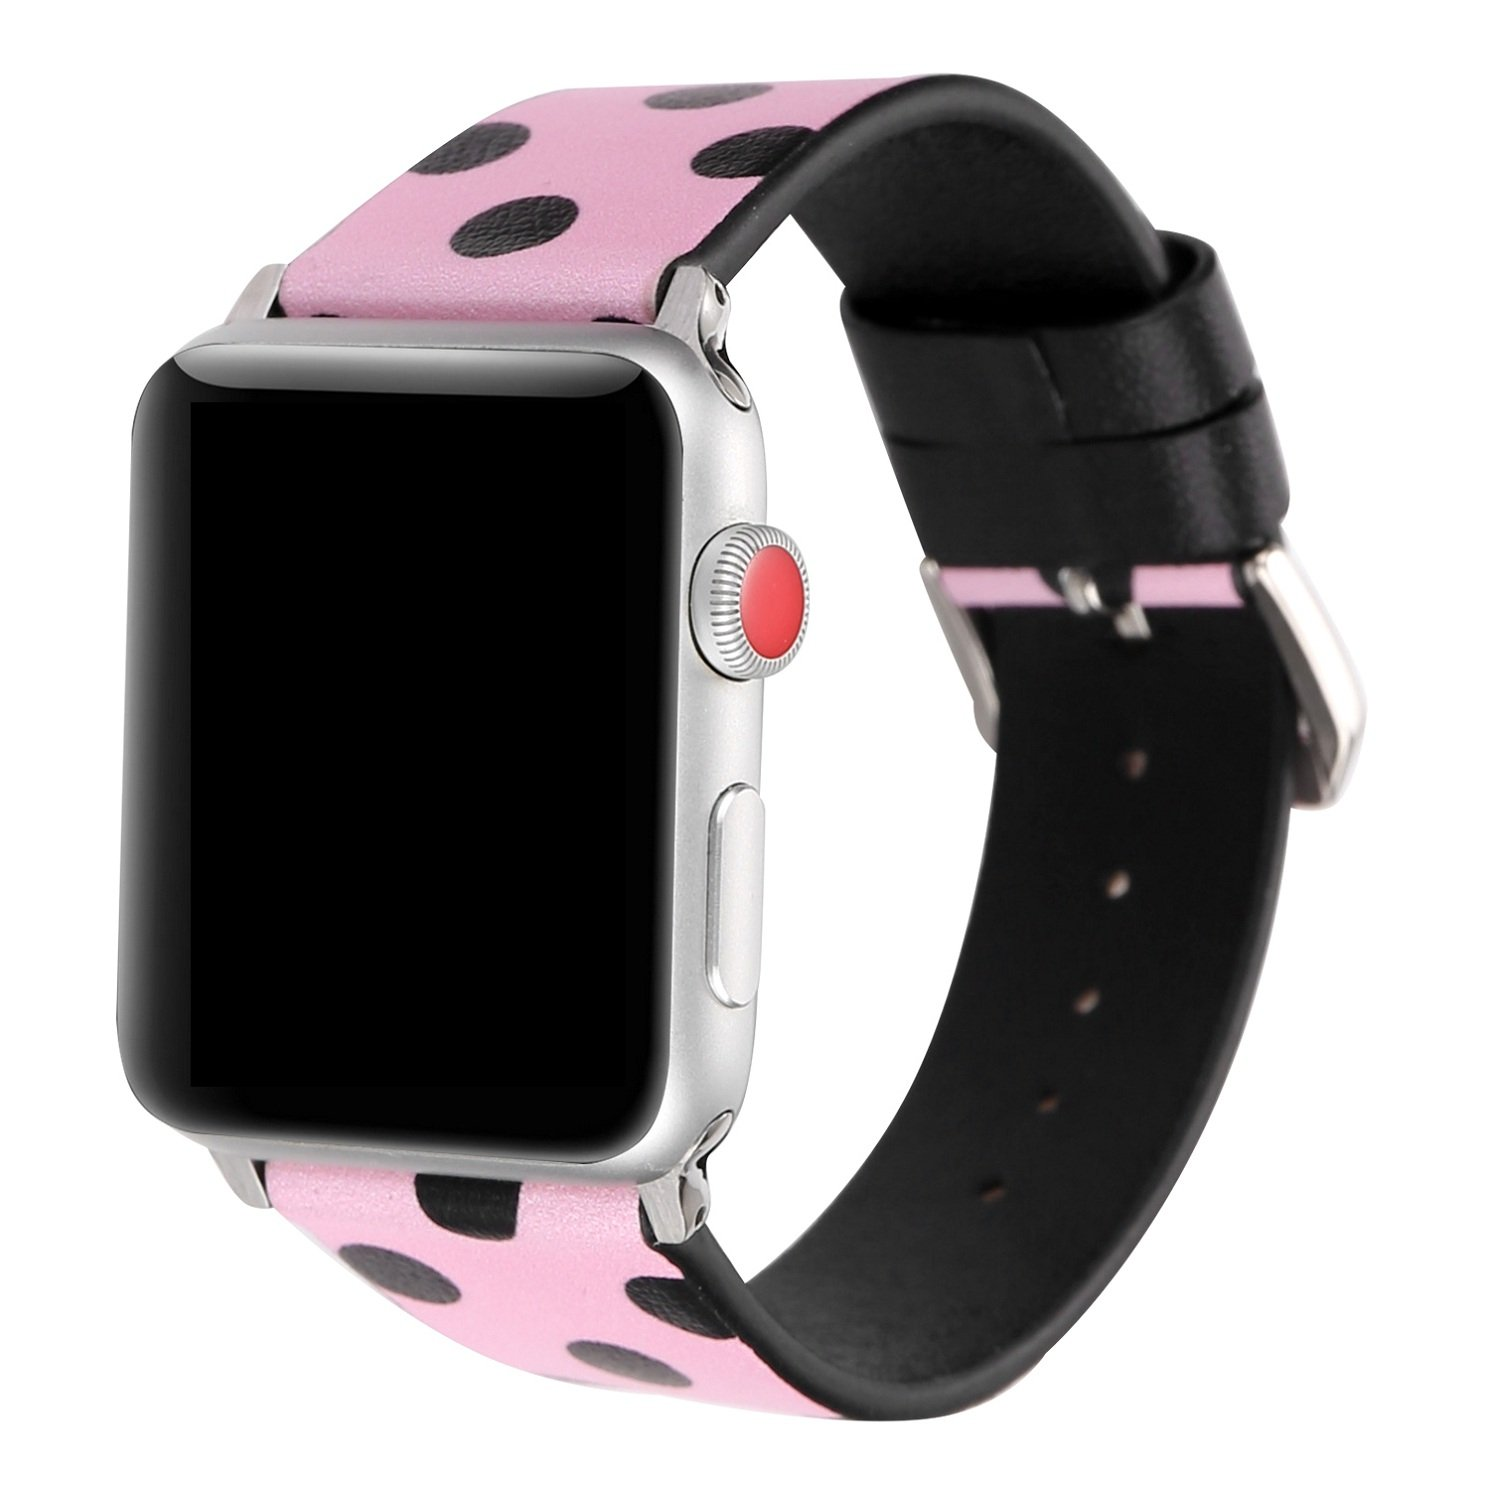 Juzzhou Band For Apple Watch iWatch Series 3/2/1 Sport Edition Leather Replacement Bracelet Wristband Wriststrap Watchband Wrist Strap With Metal Adapter Adjustable Buckle For Woman Girl Pink 38mm by Juzzhou (Image #2)